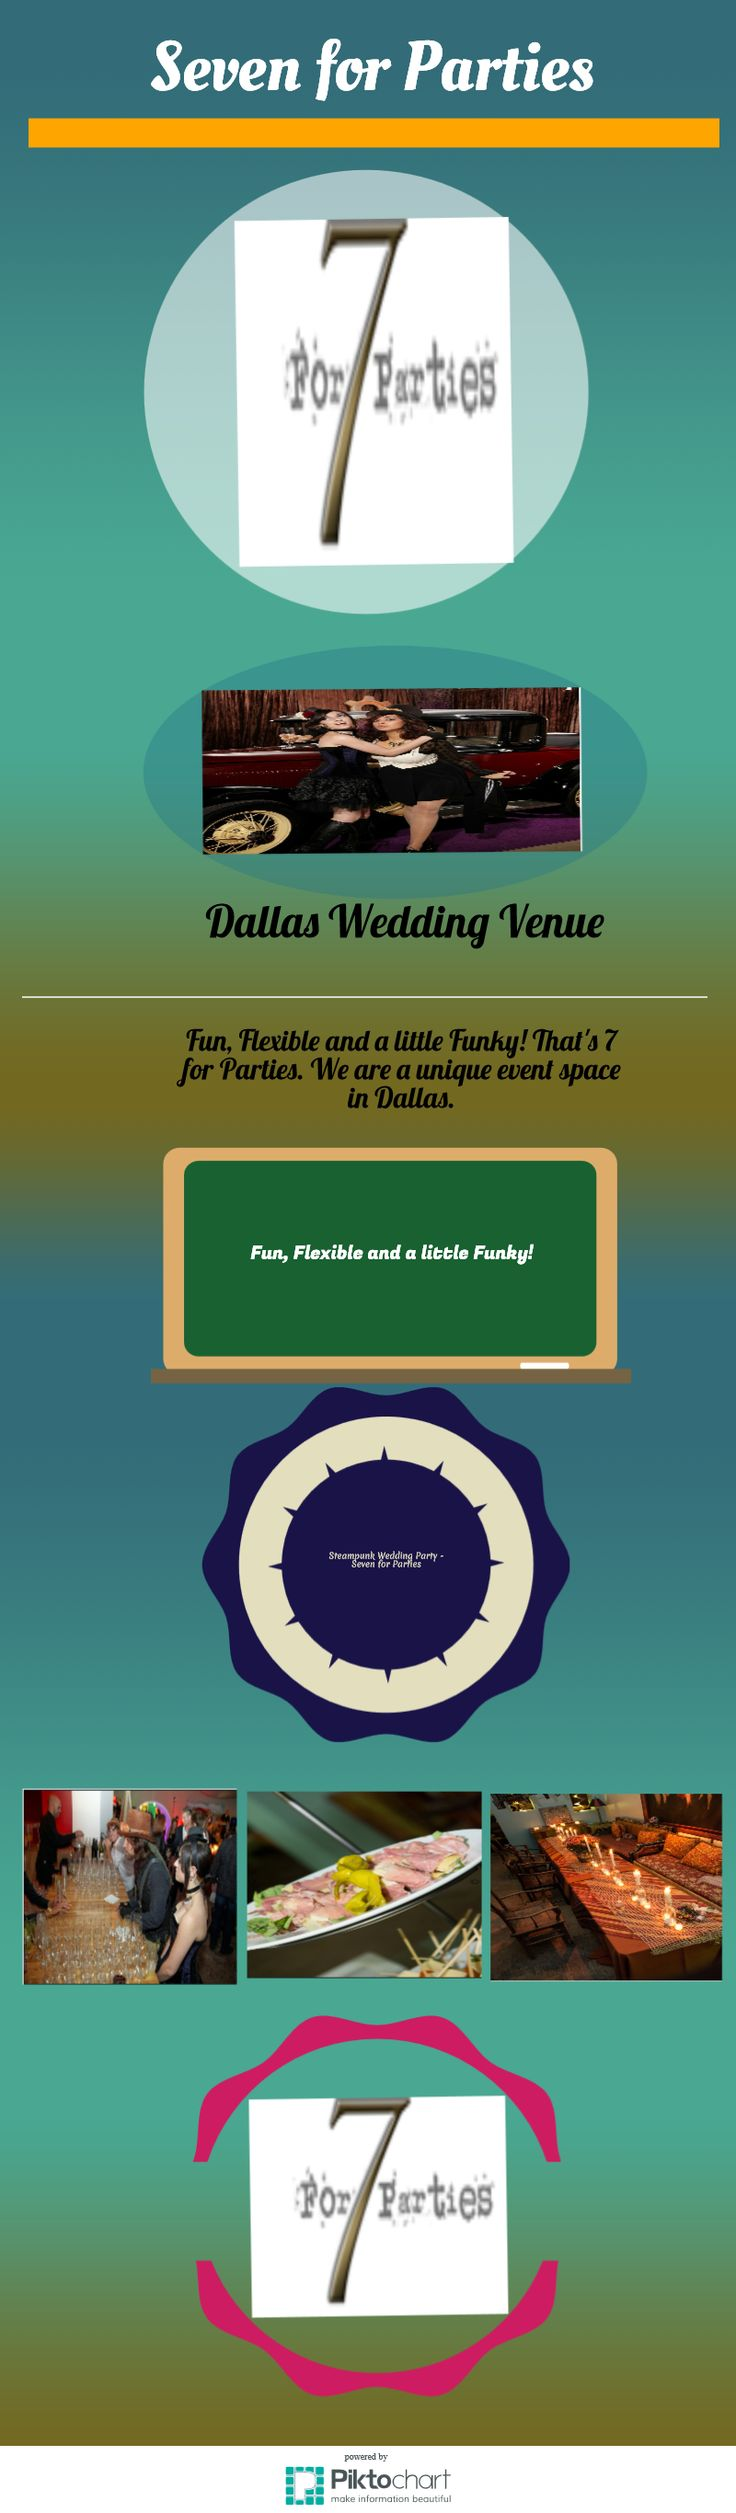 7forparties makes the perfect Dallas wedding venue, with bundles intended to upgrade all your wedding events. Your wedding and gathering catering is given by Central 214, offering mouthwatering American cooking and a presentation that will make your Dallas wedding or gathering occasion positively memorable. http://www.7forparties.com/node/59